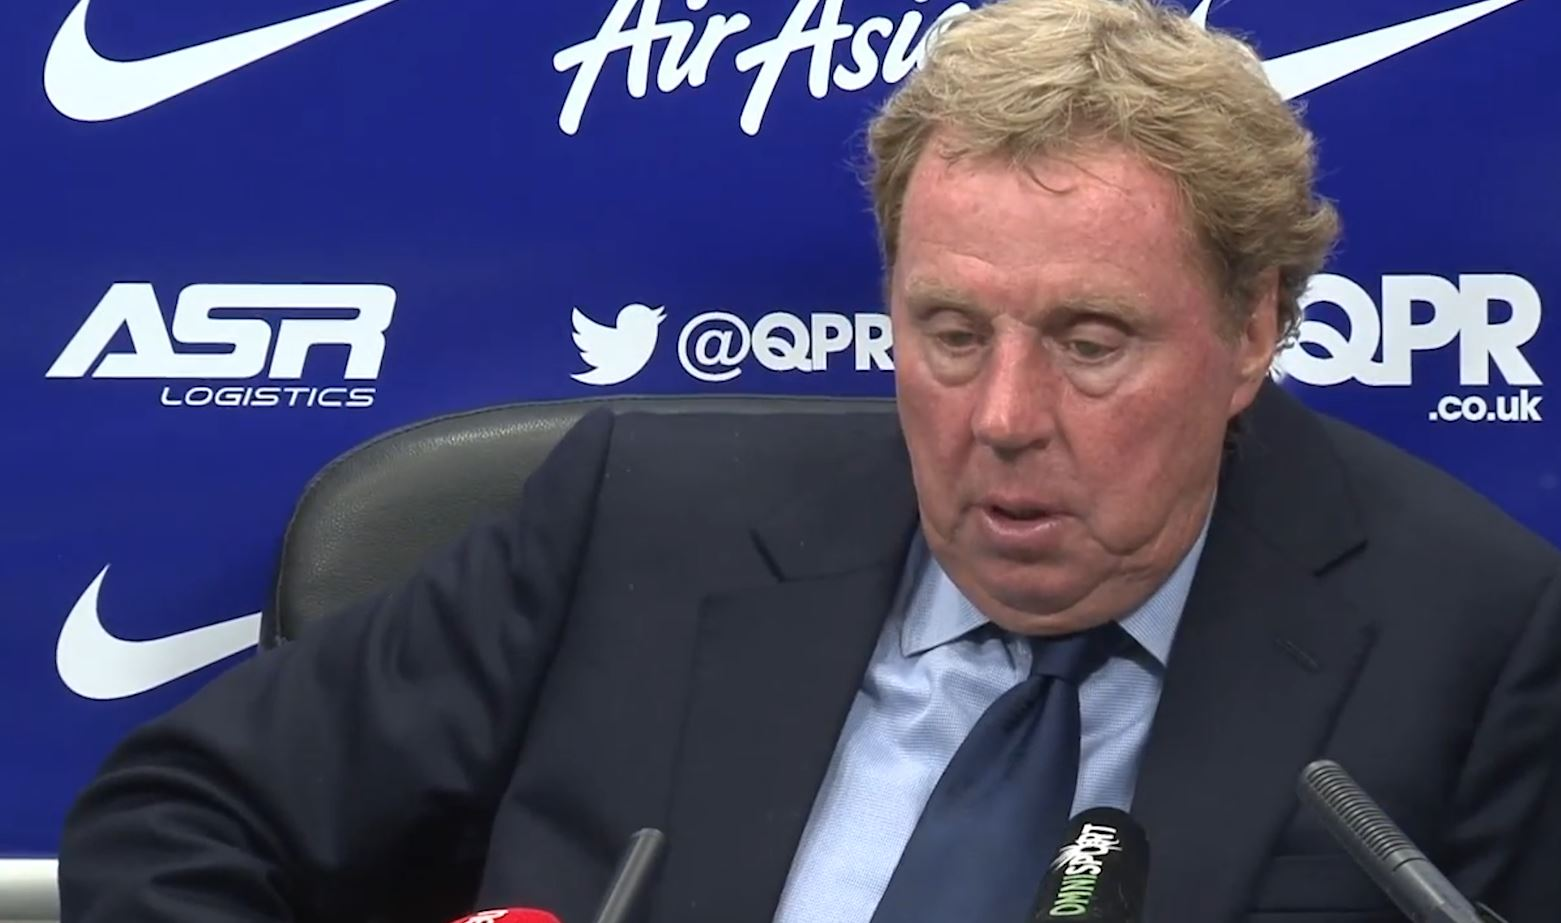 Harry Redknapp: Overweight Taarabt Not Fit to Play Football